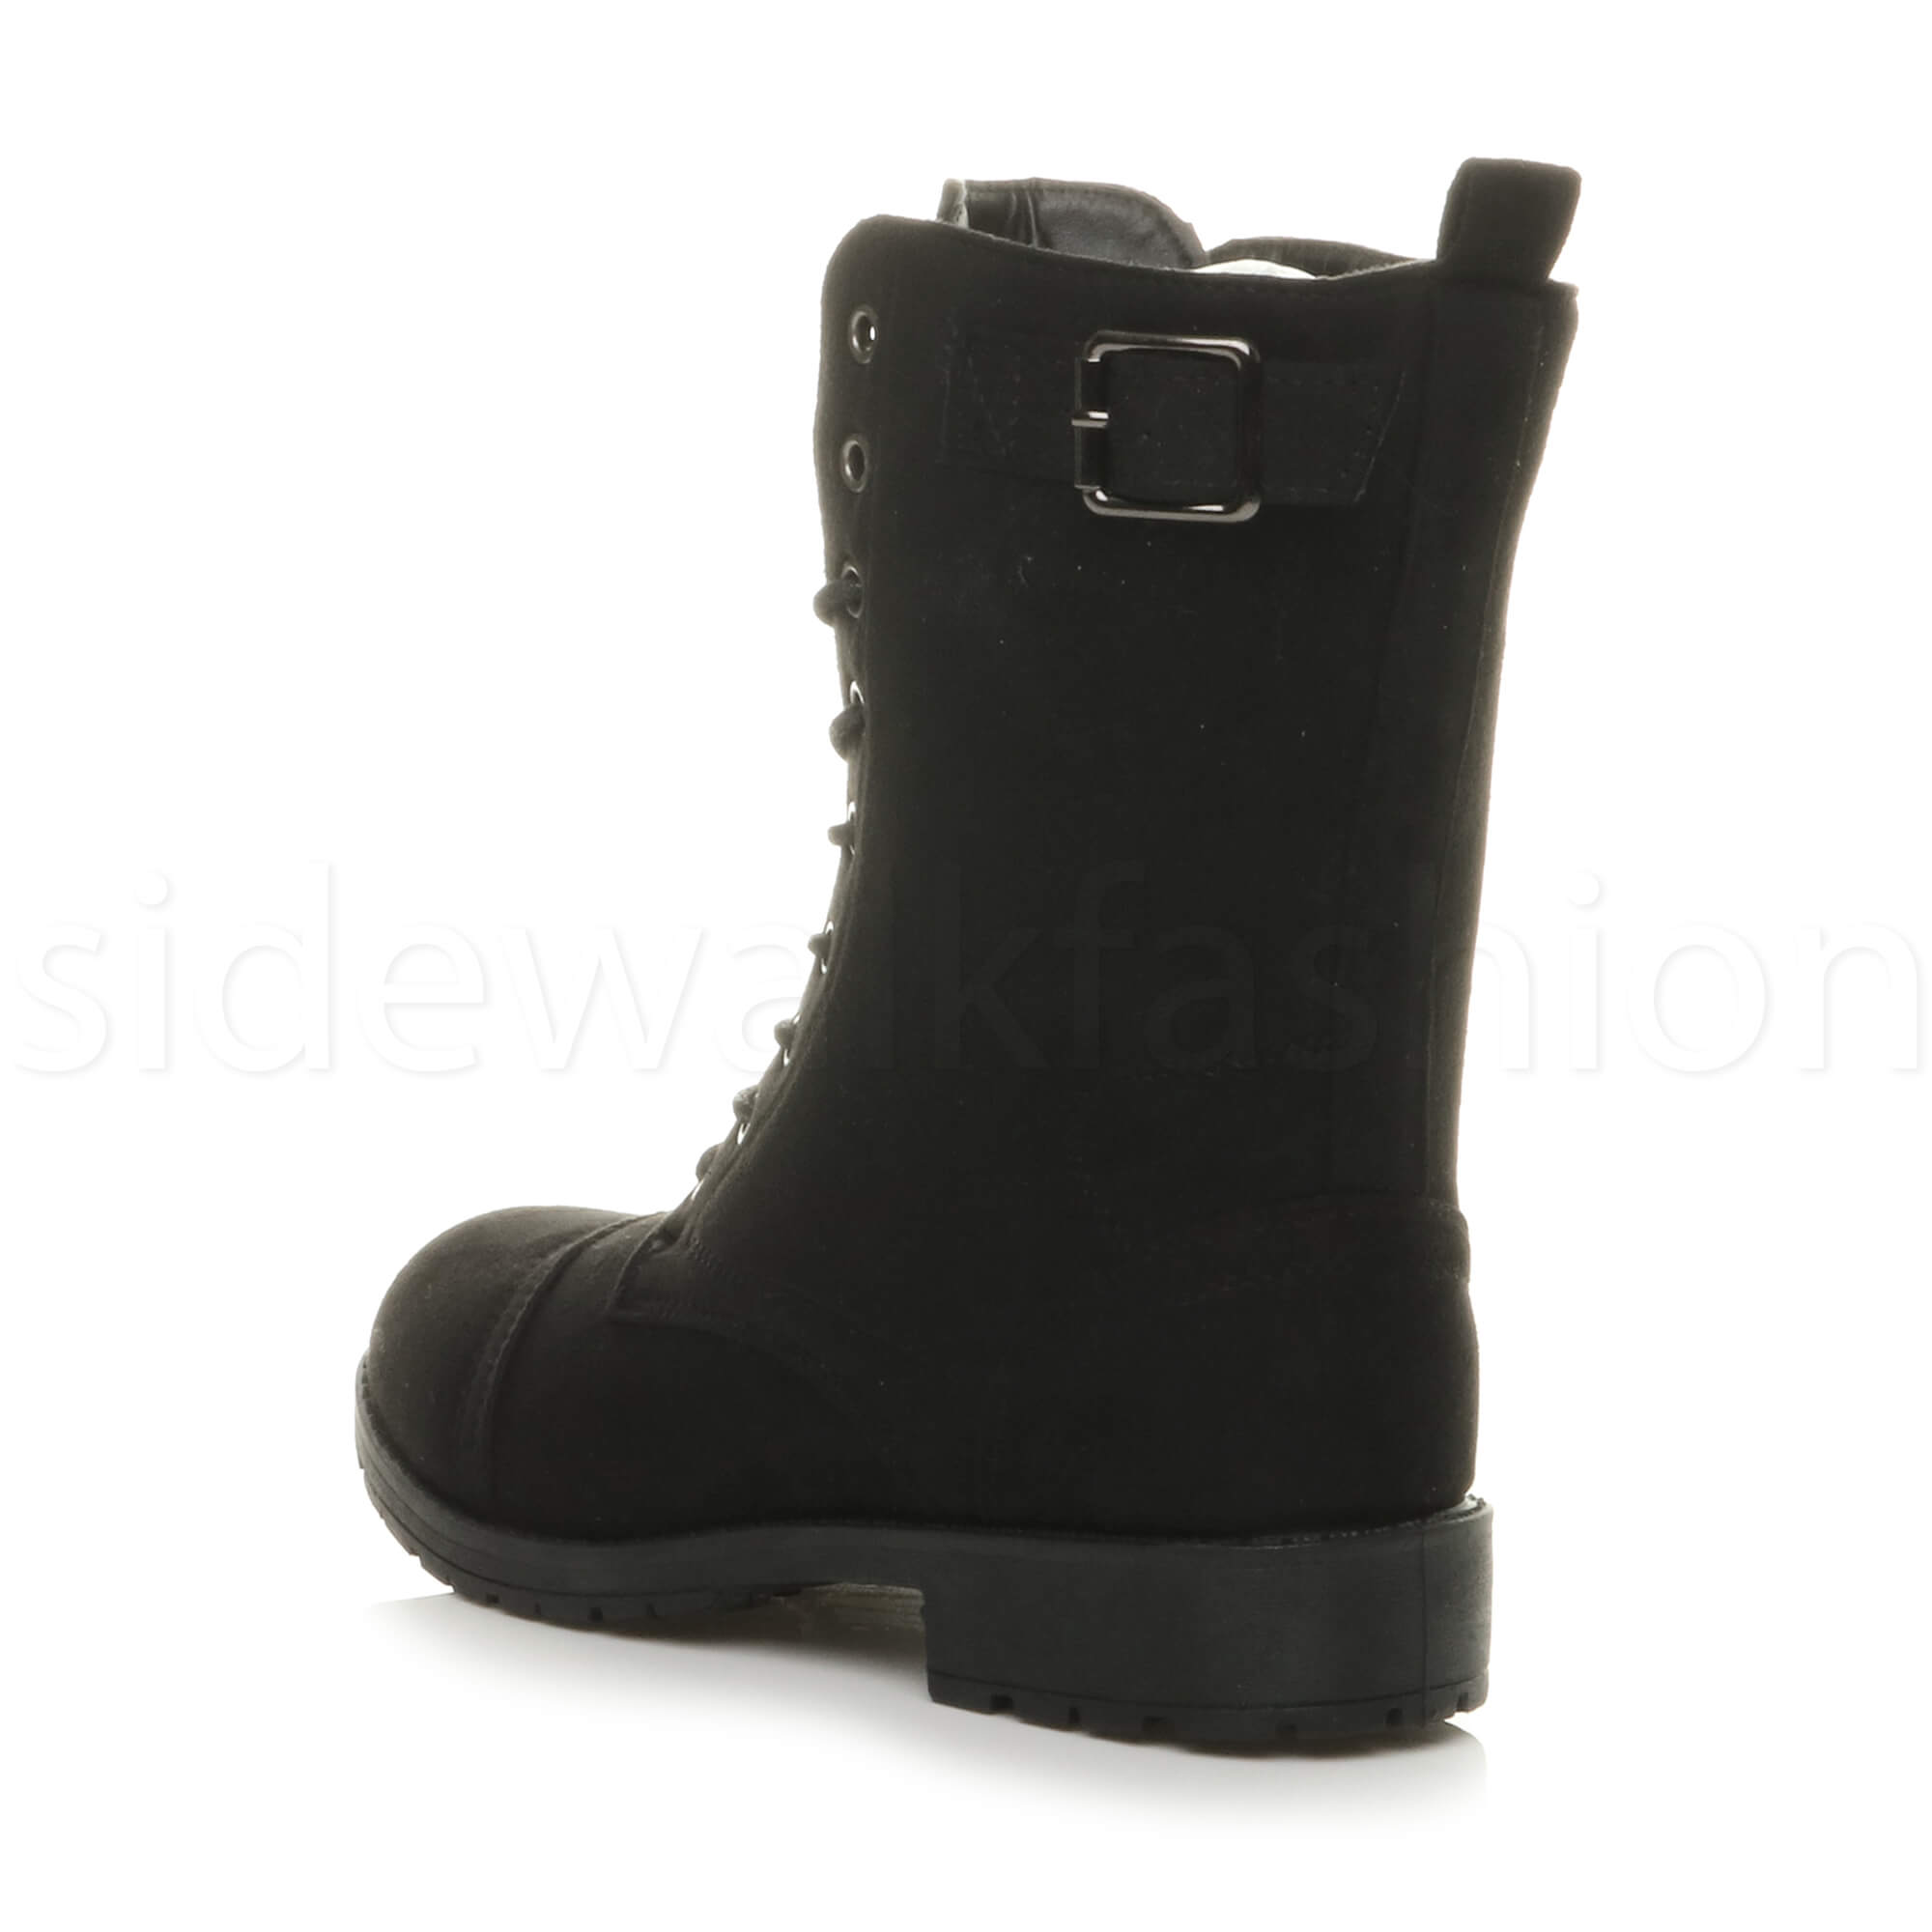 Womens-ladies-low-heel-flat-lace-up-zip-combat-biker-military-ankle-boots-size thumbnail 29